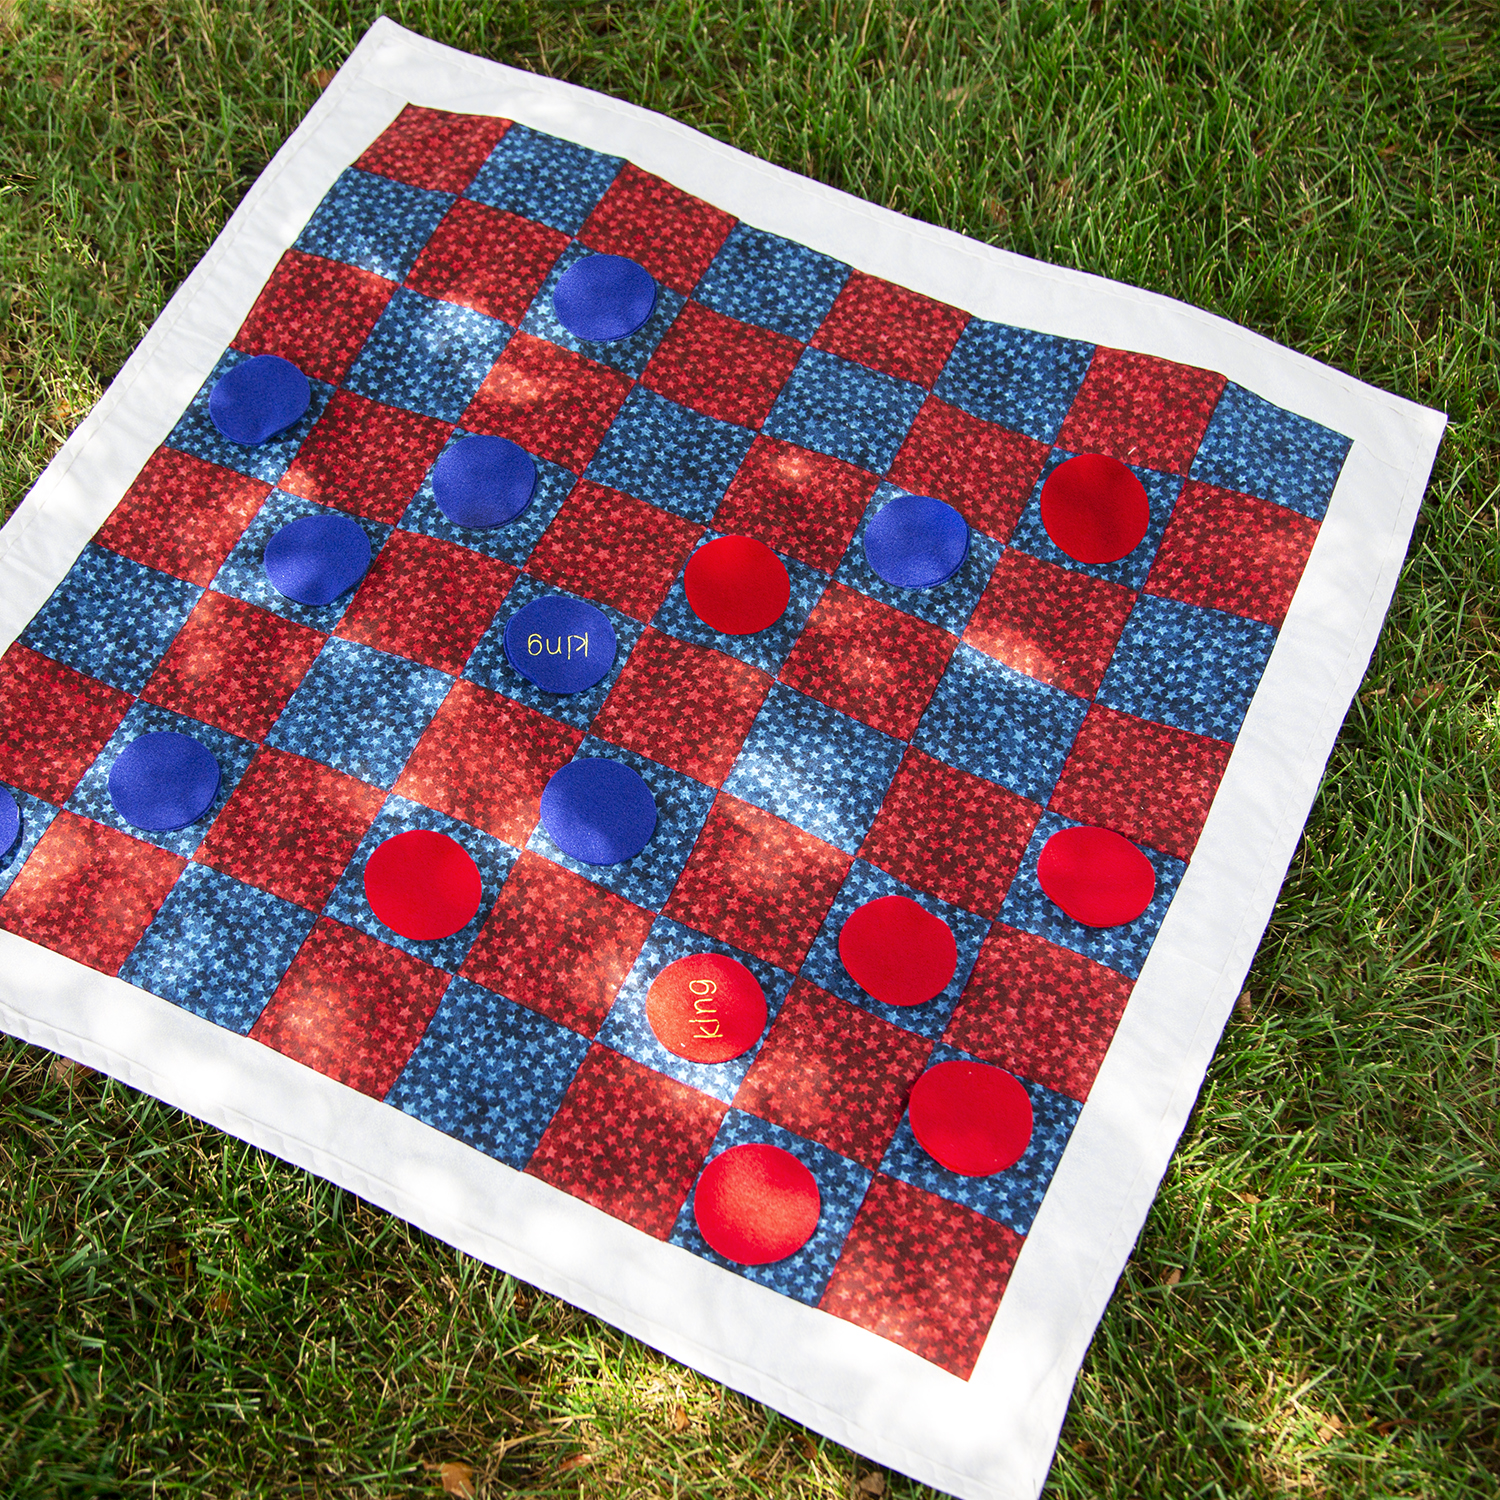 red white and blue homemade fabric checkerboard laying on grass with circular felt checker pieces